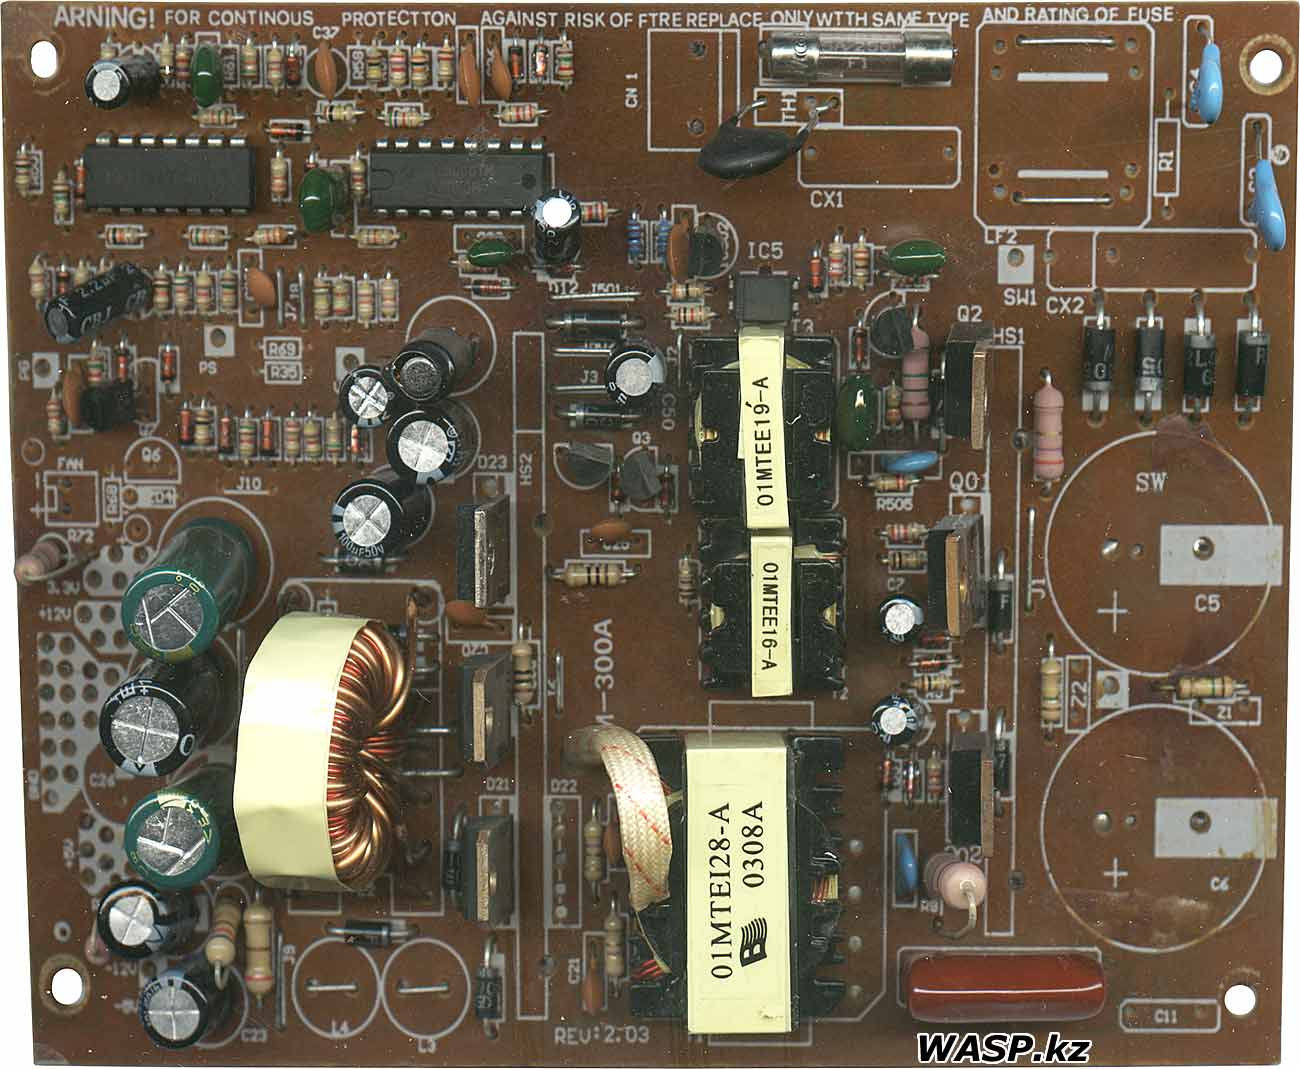 TM-300A Rev: 2.03 INTEX ATX-300W power supply circuit